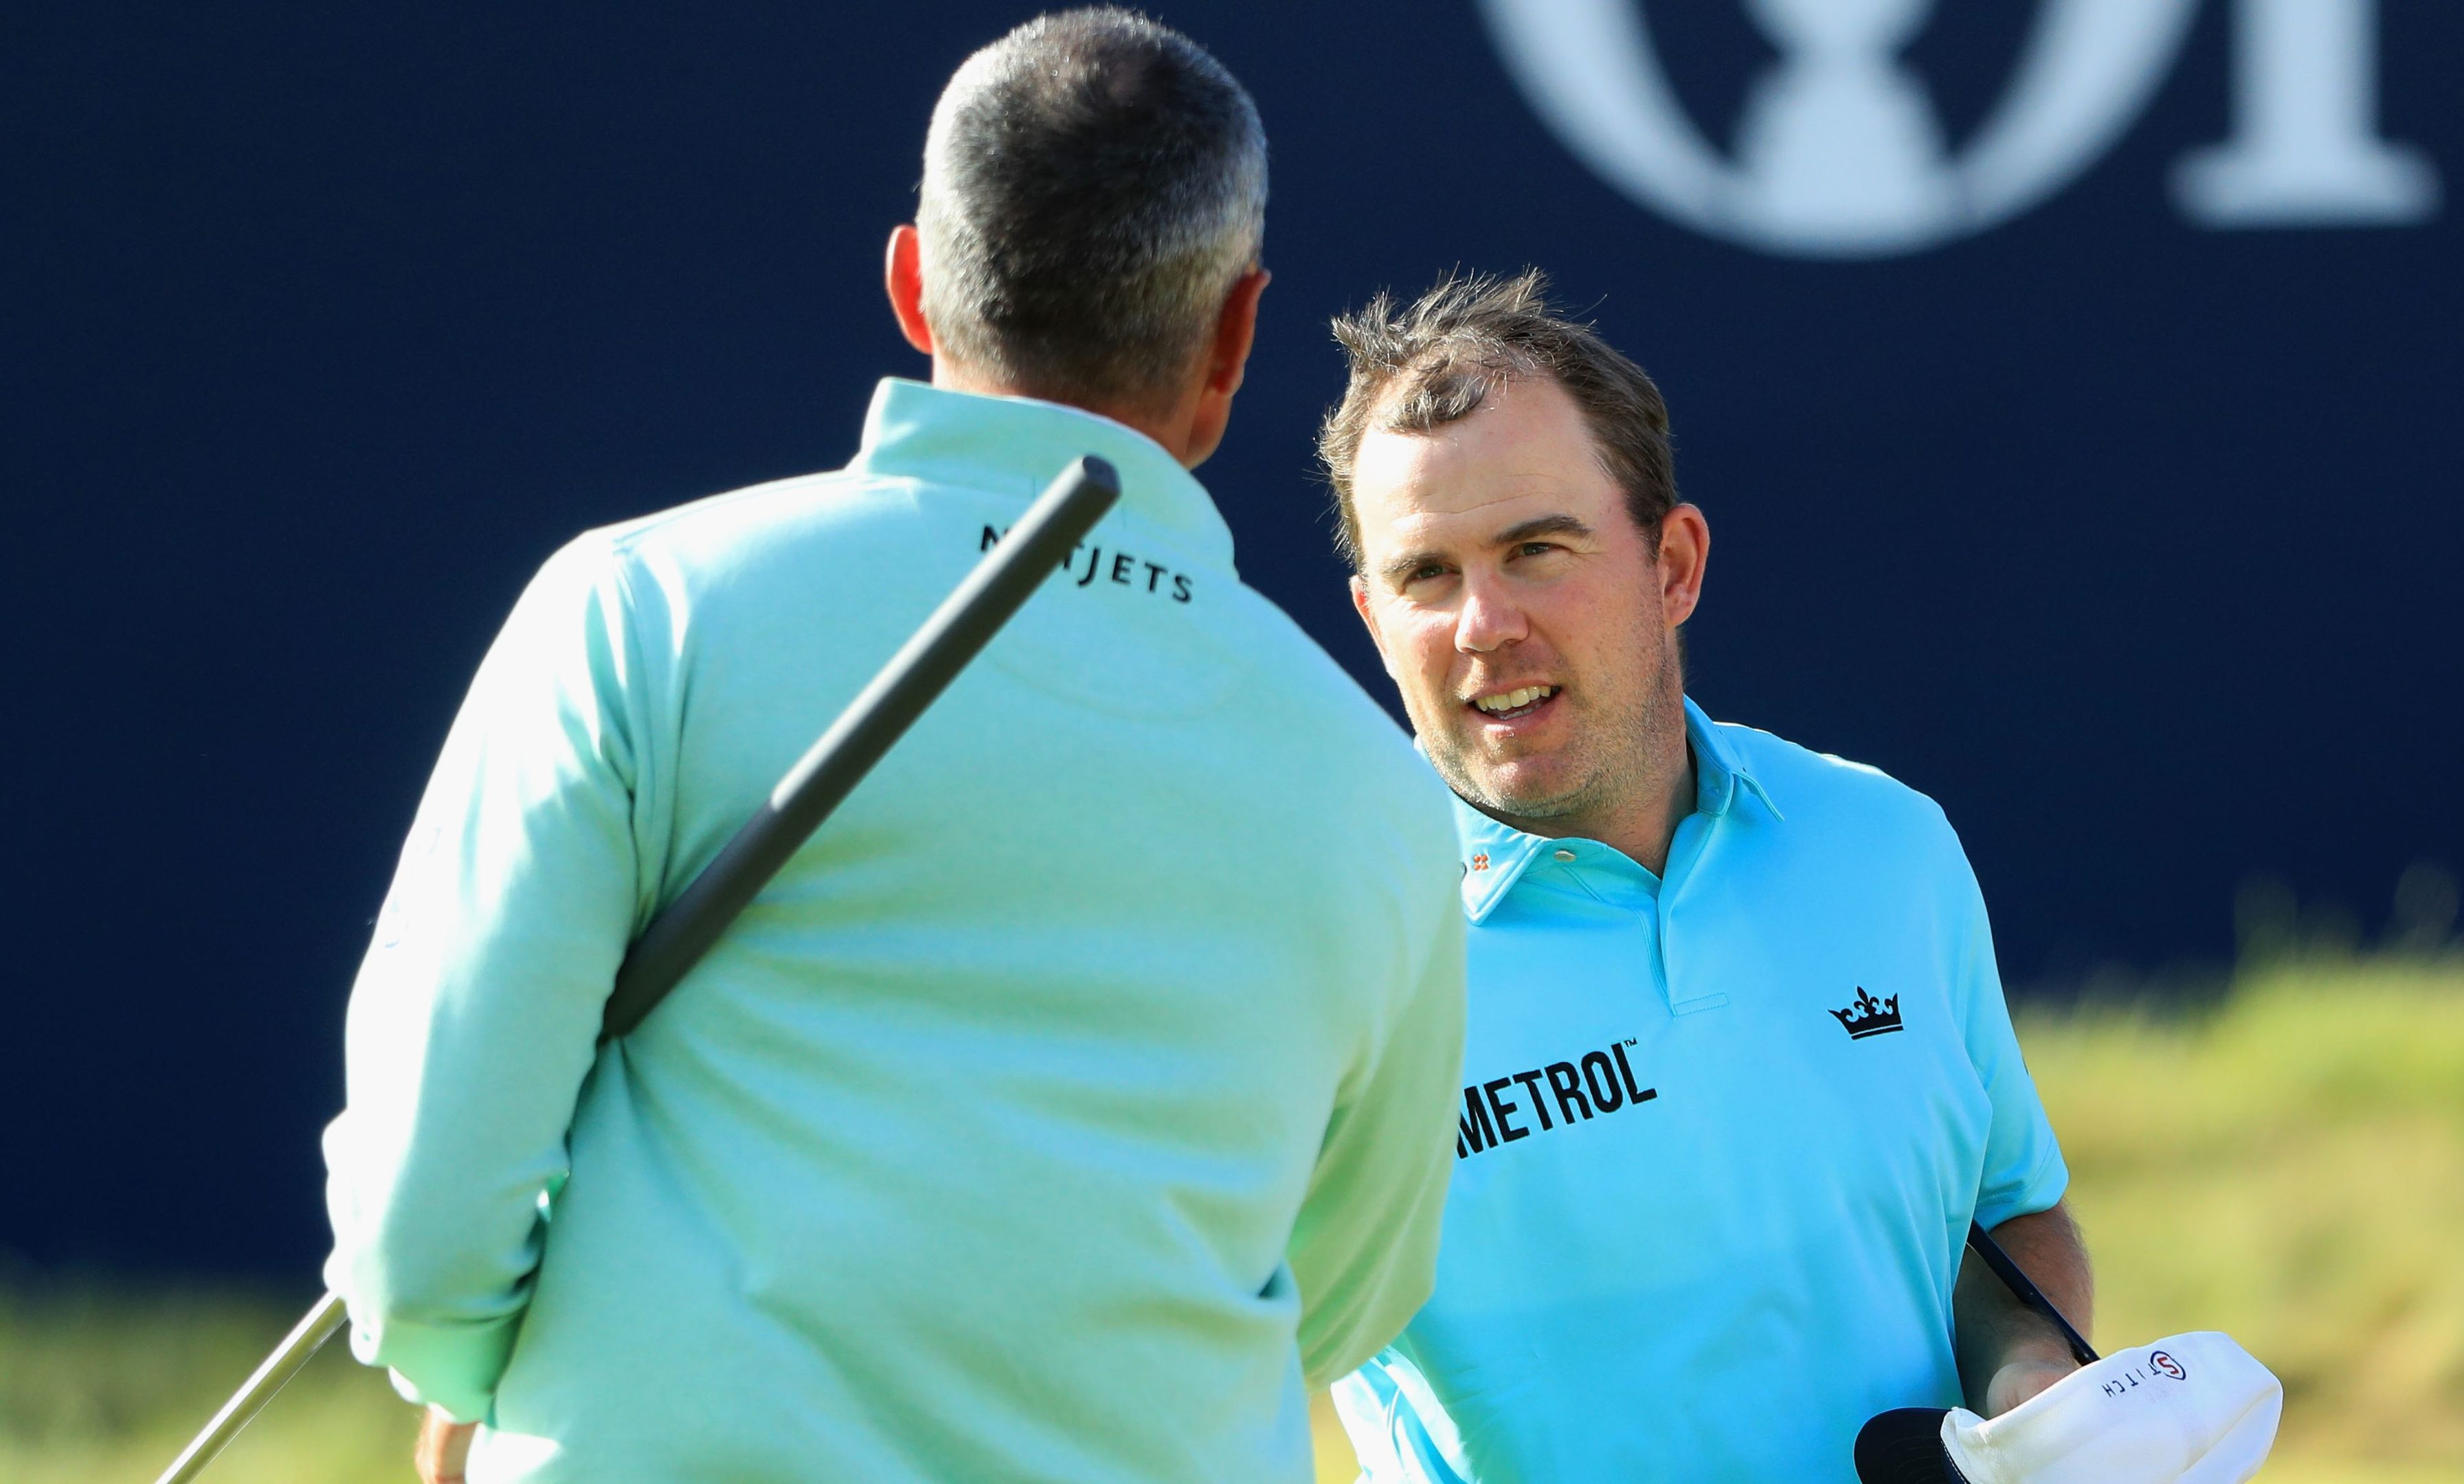 Richie Ramsay shakes hands with Matt Kuchar after their opening round.